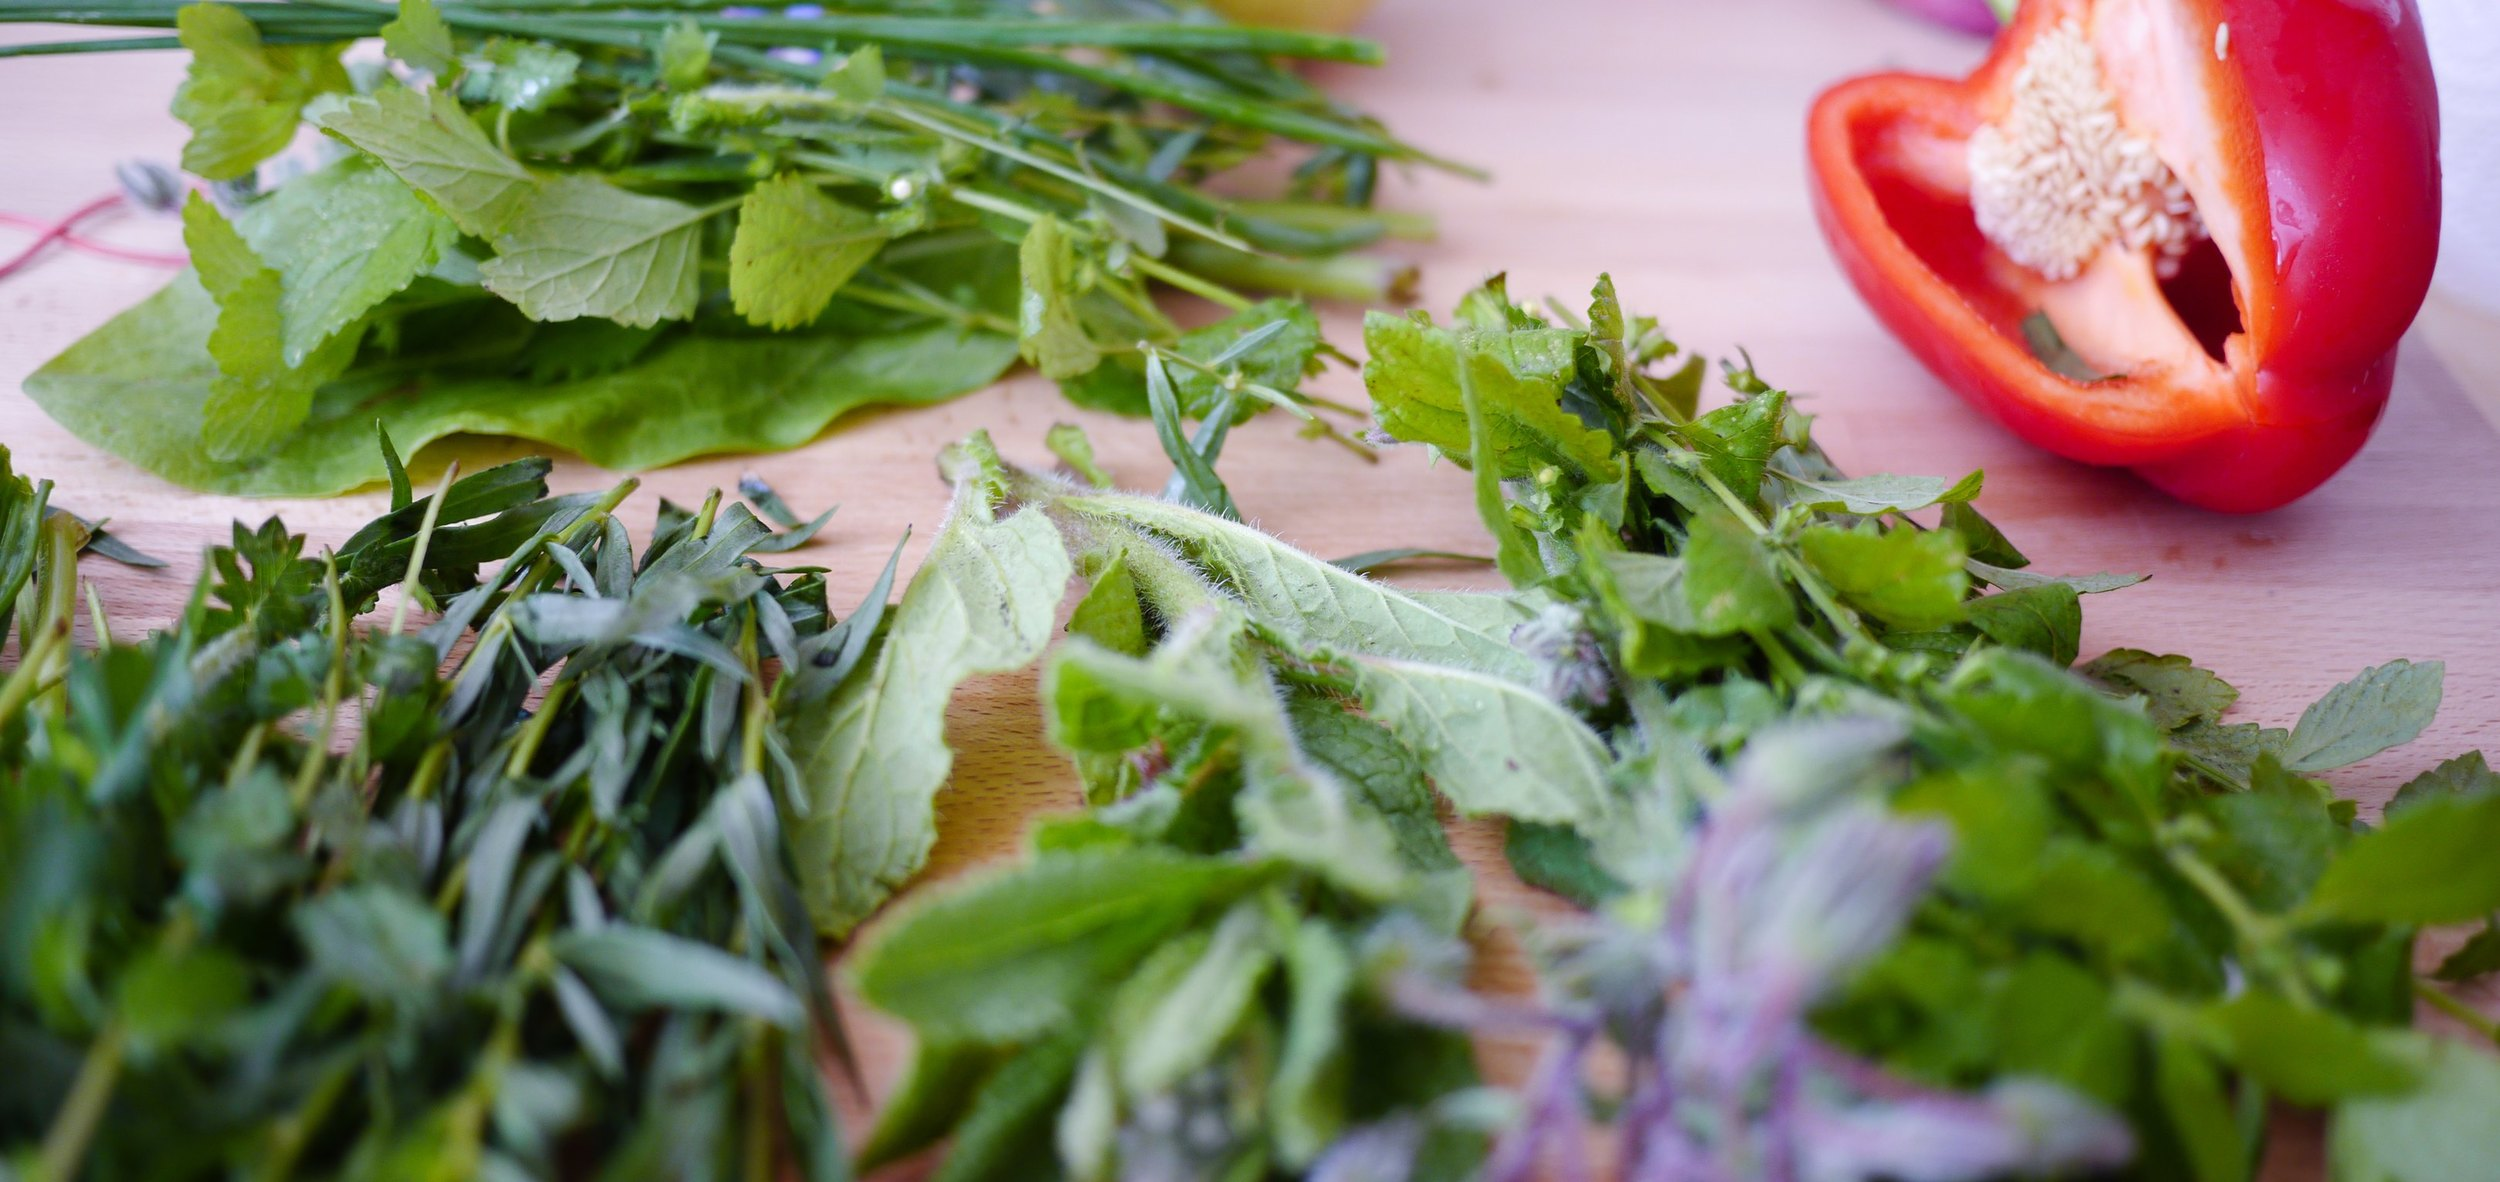 HERBS FOR TASTE AND HEALING